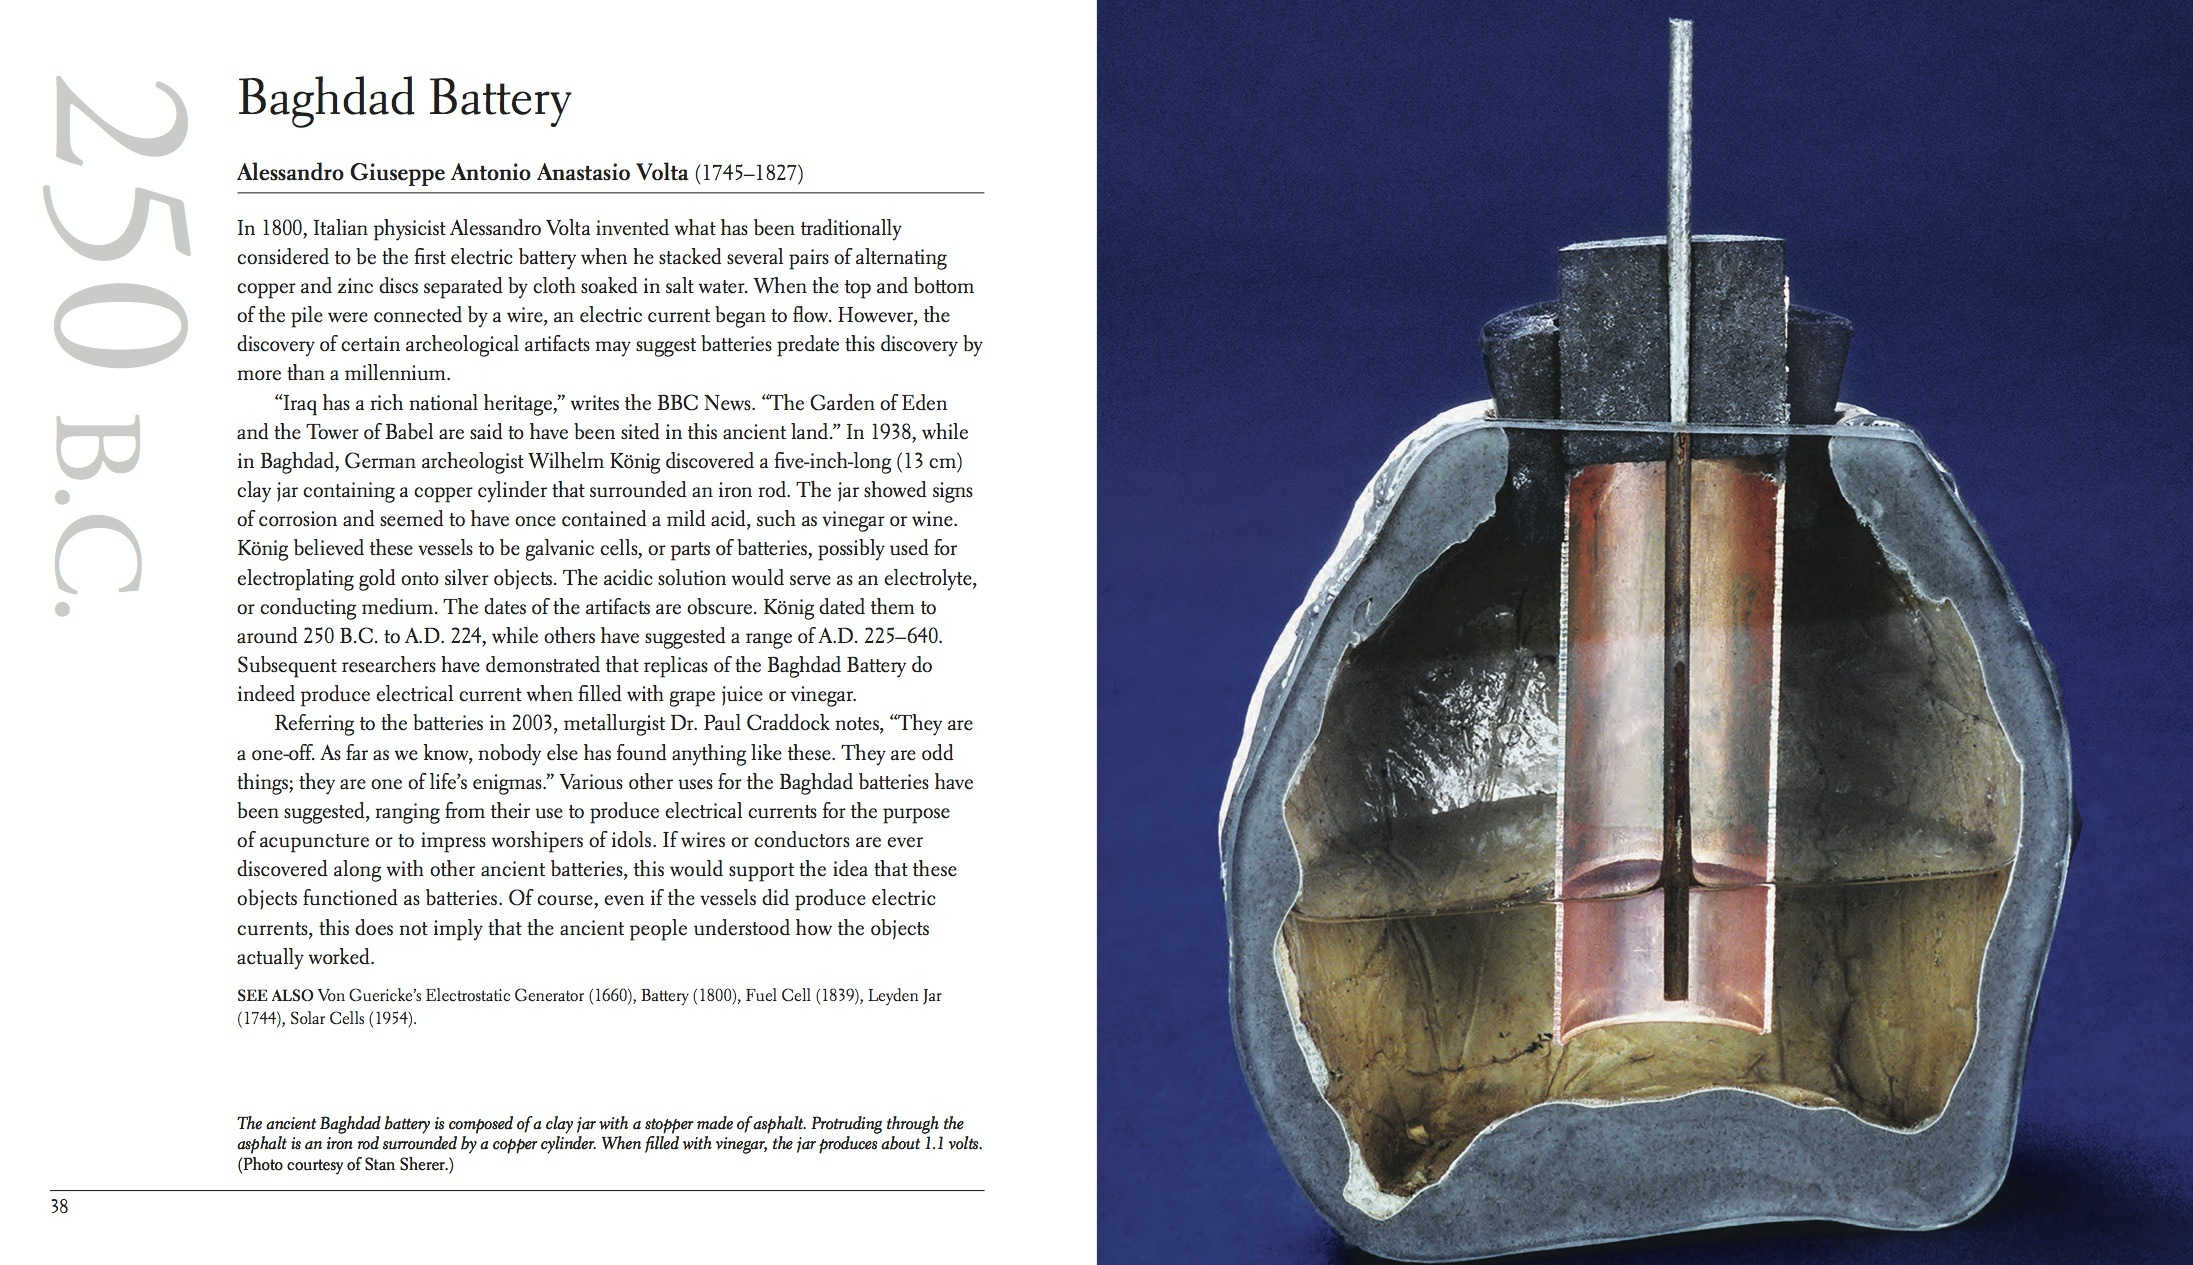 The Baghdad Battery And Ancient Aliens